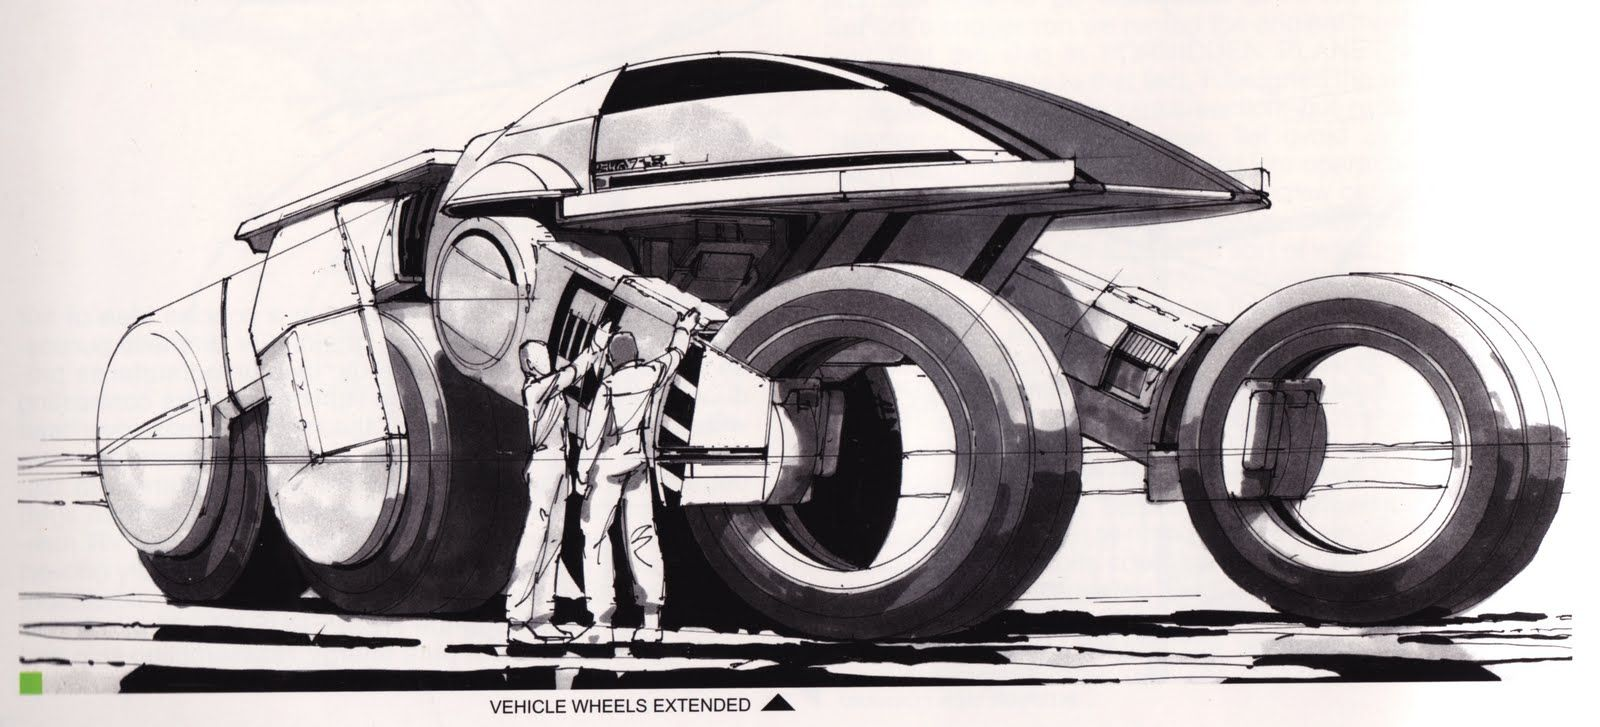 The Art of Syd Mead - Daily Art